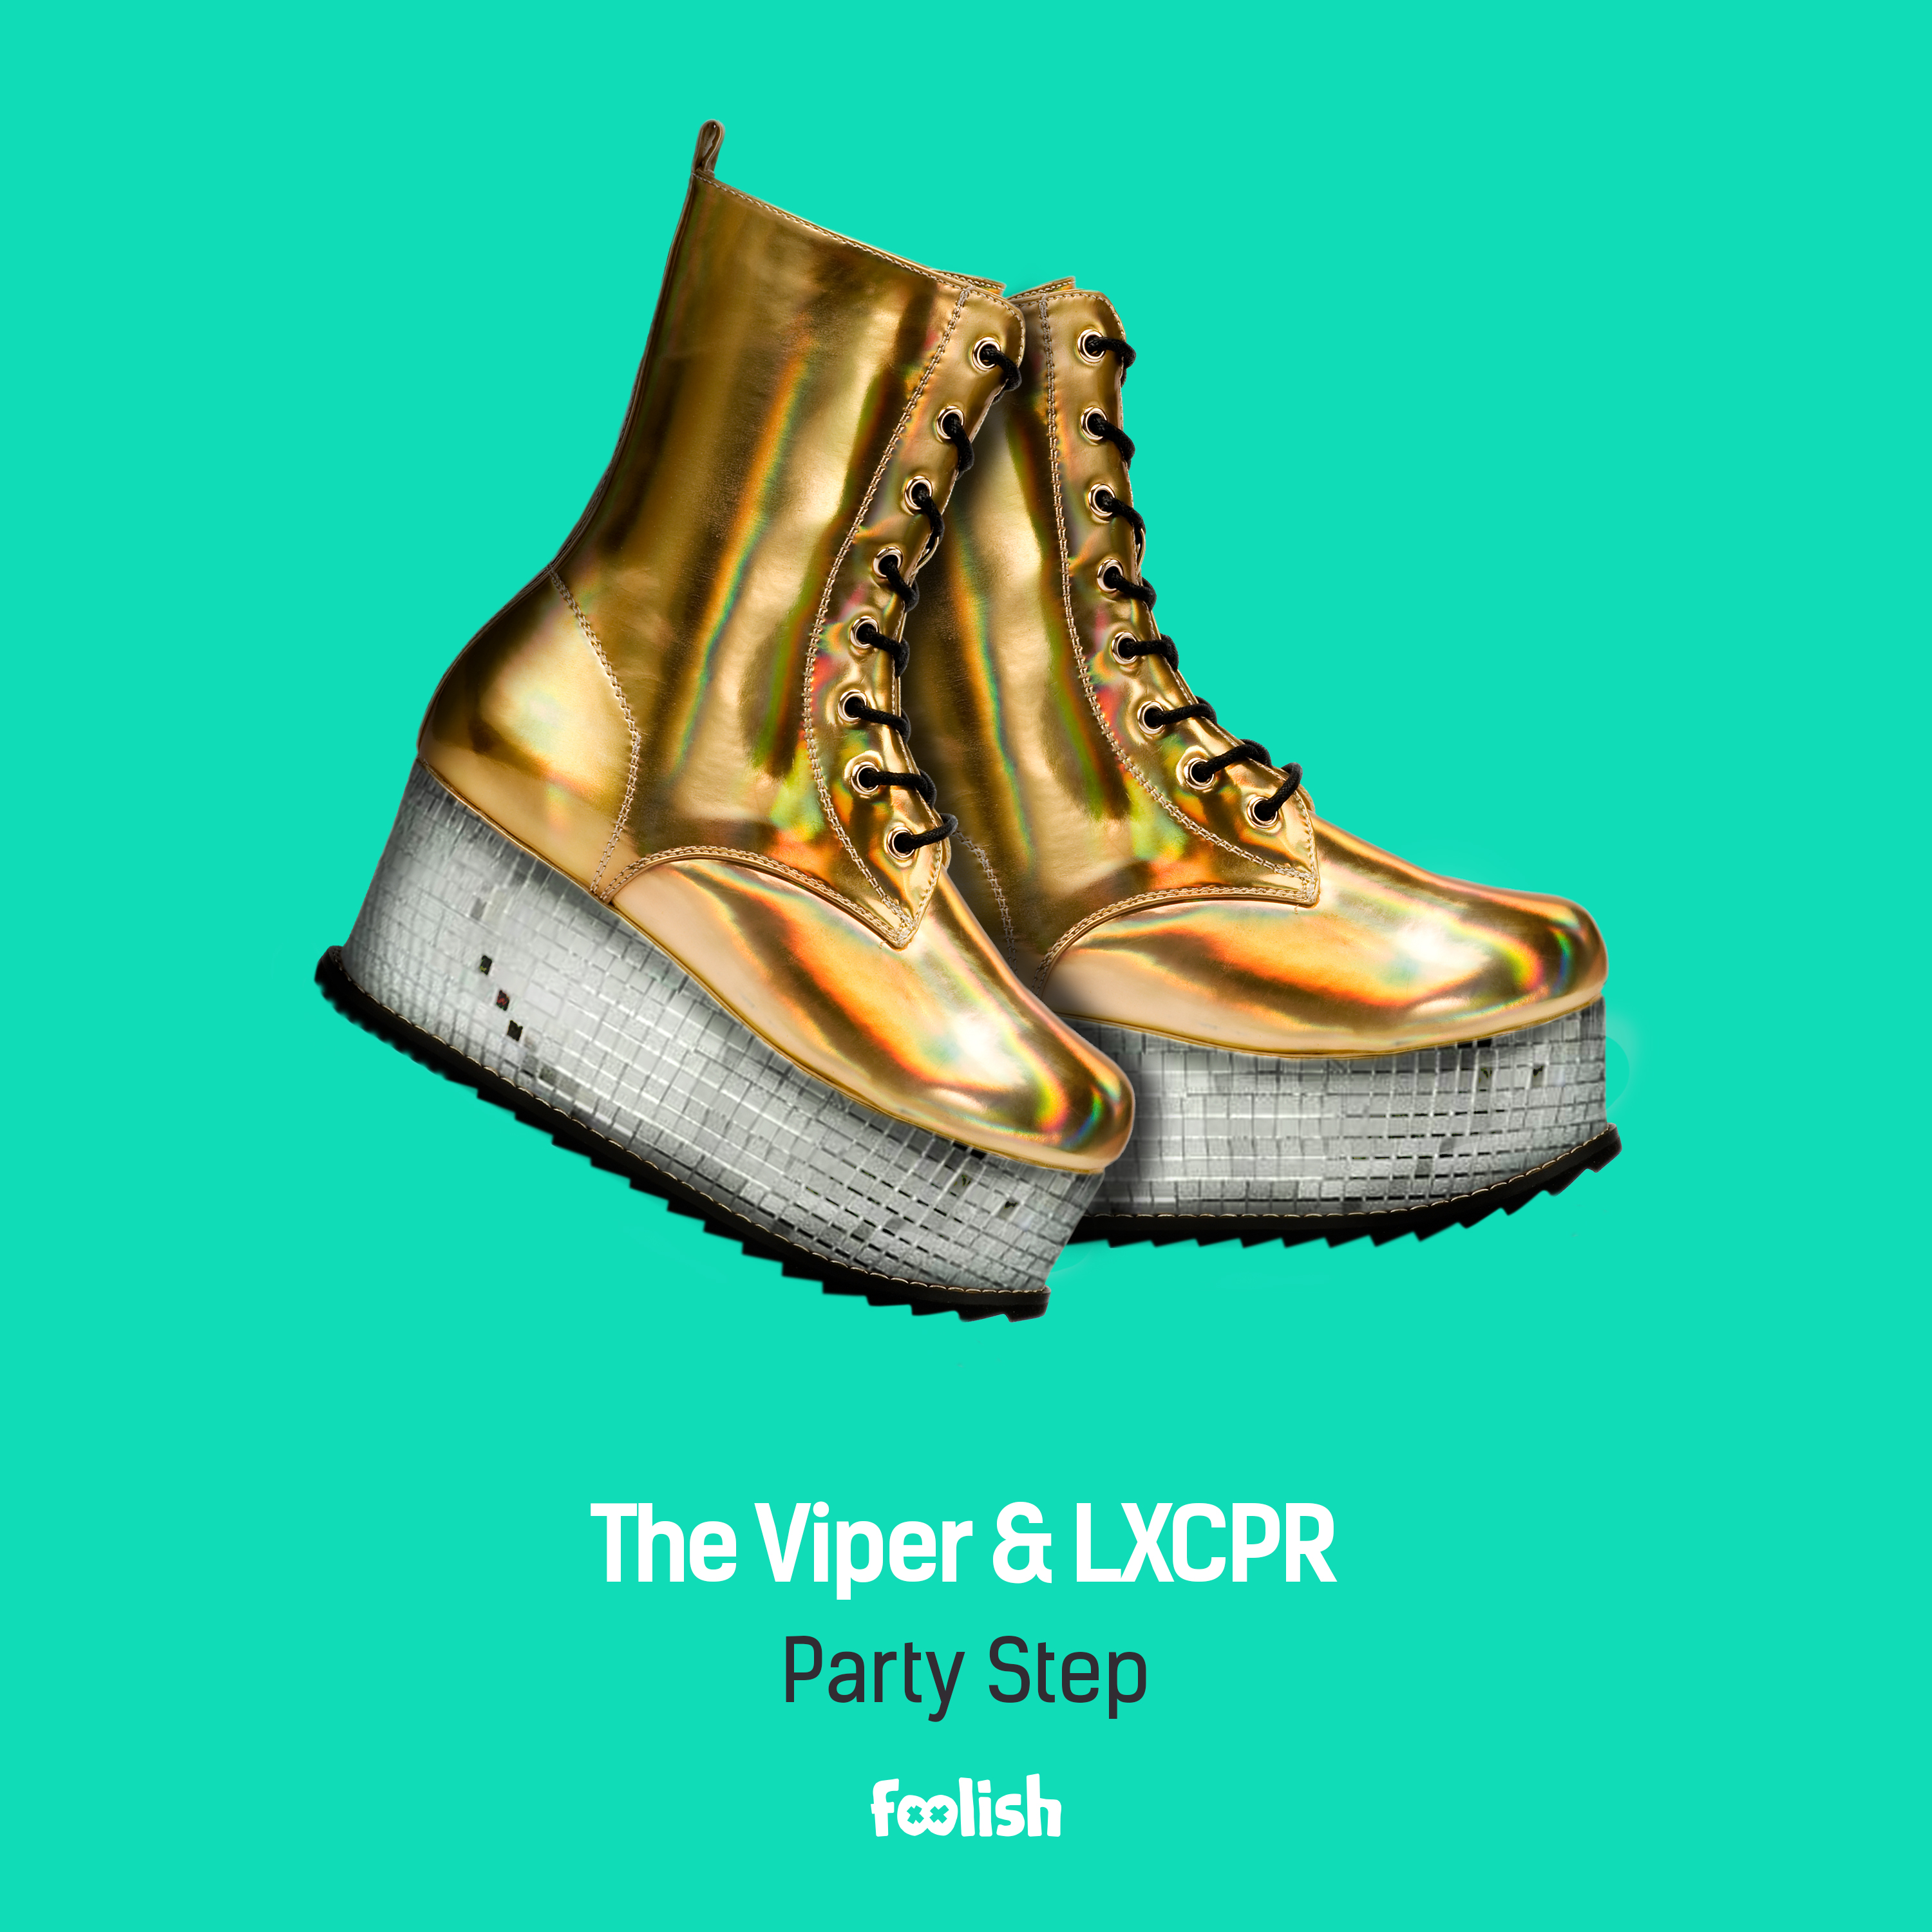 The Viper & LXCPR - Party Step